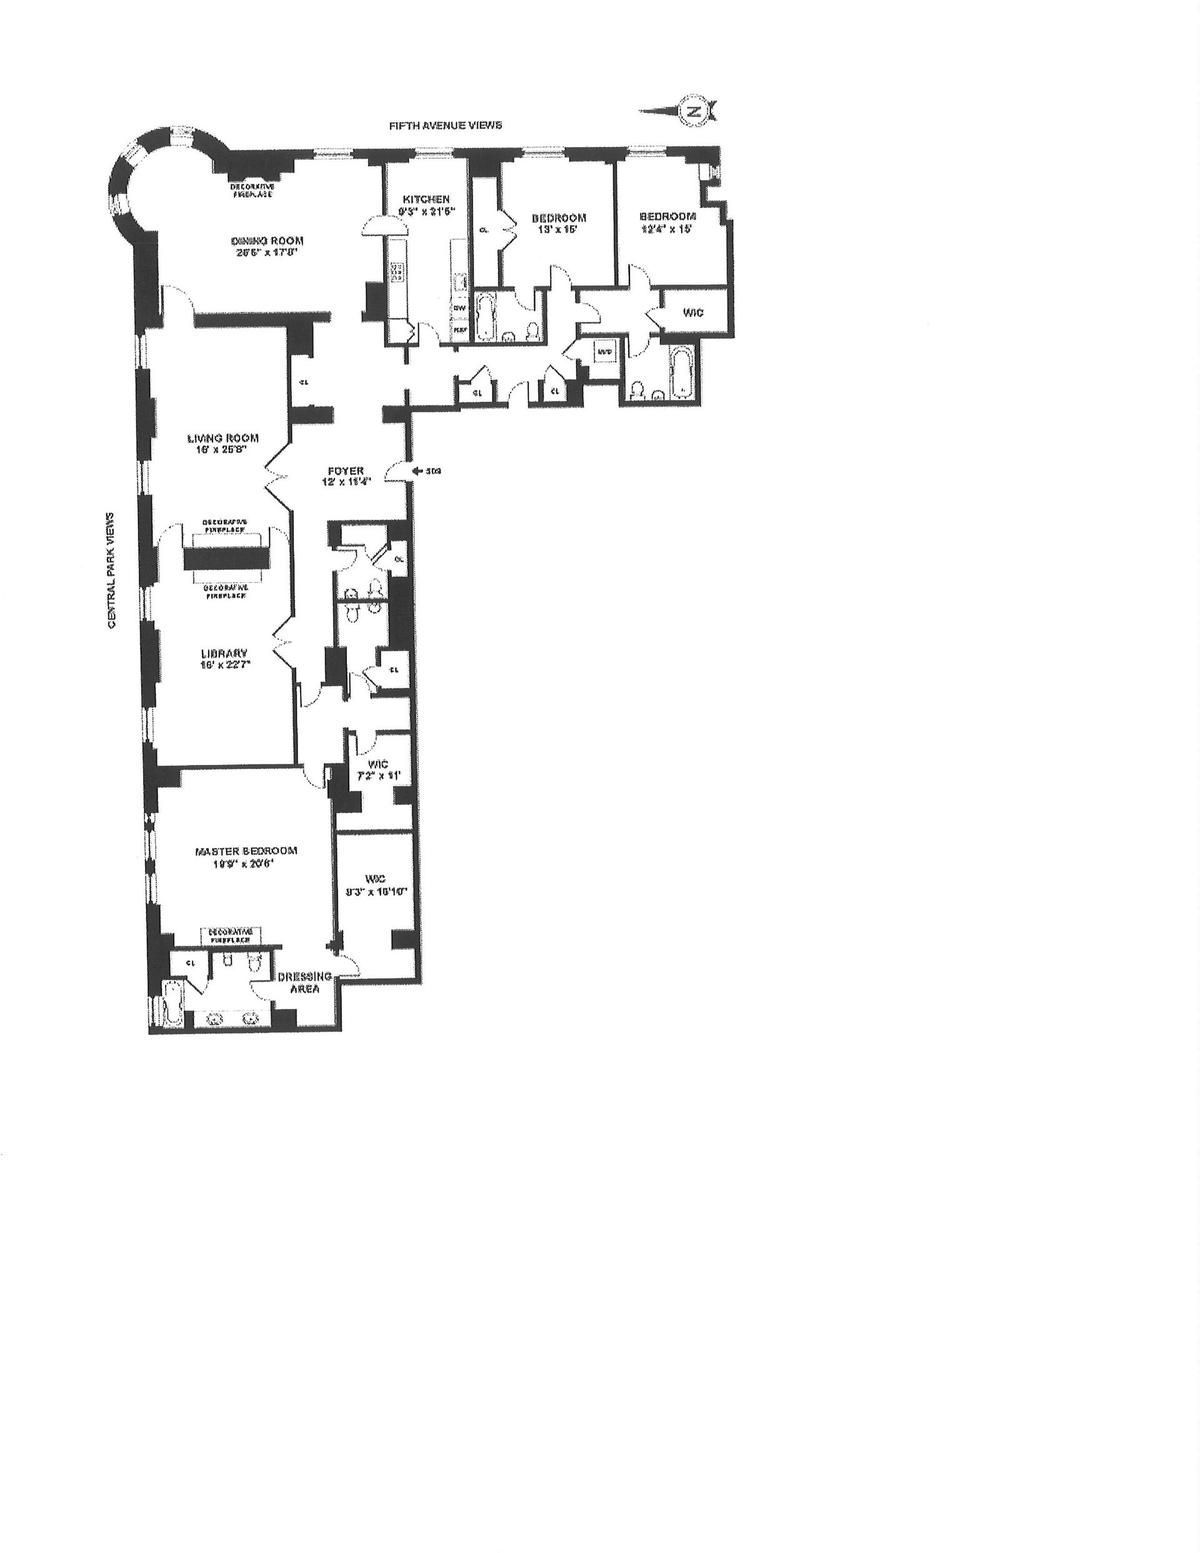 The Plaza S Historic Astor Suite Hits The Market Asking 39 5m Apartment Floor Plans Floor Plan Layout Home Building Design